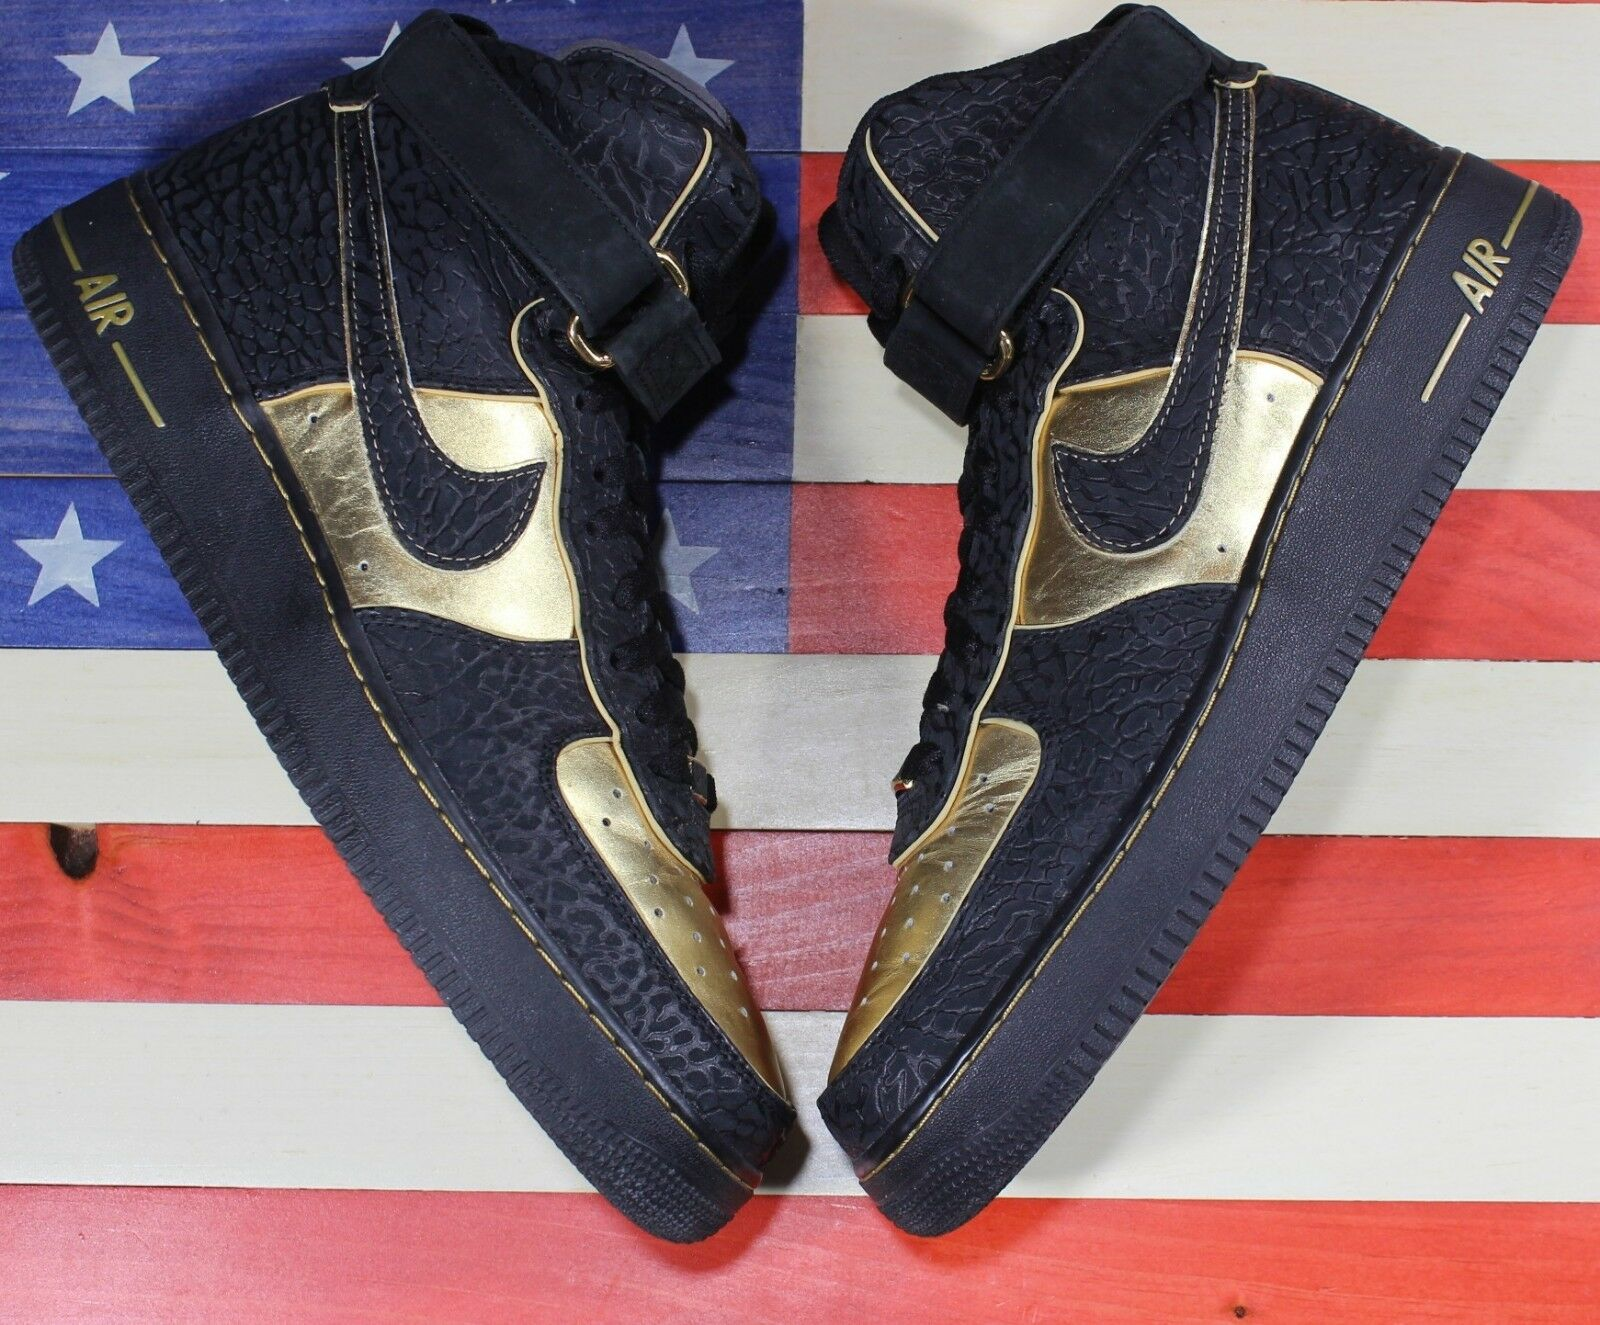 Nike Air Force 1 Hi Supreme Black Metallic gold Elephant shoes [345189-002] - 12